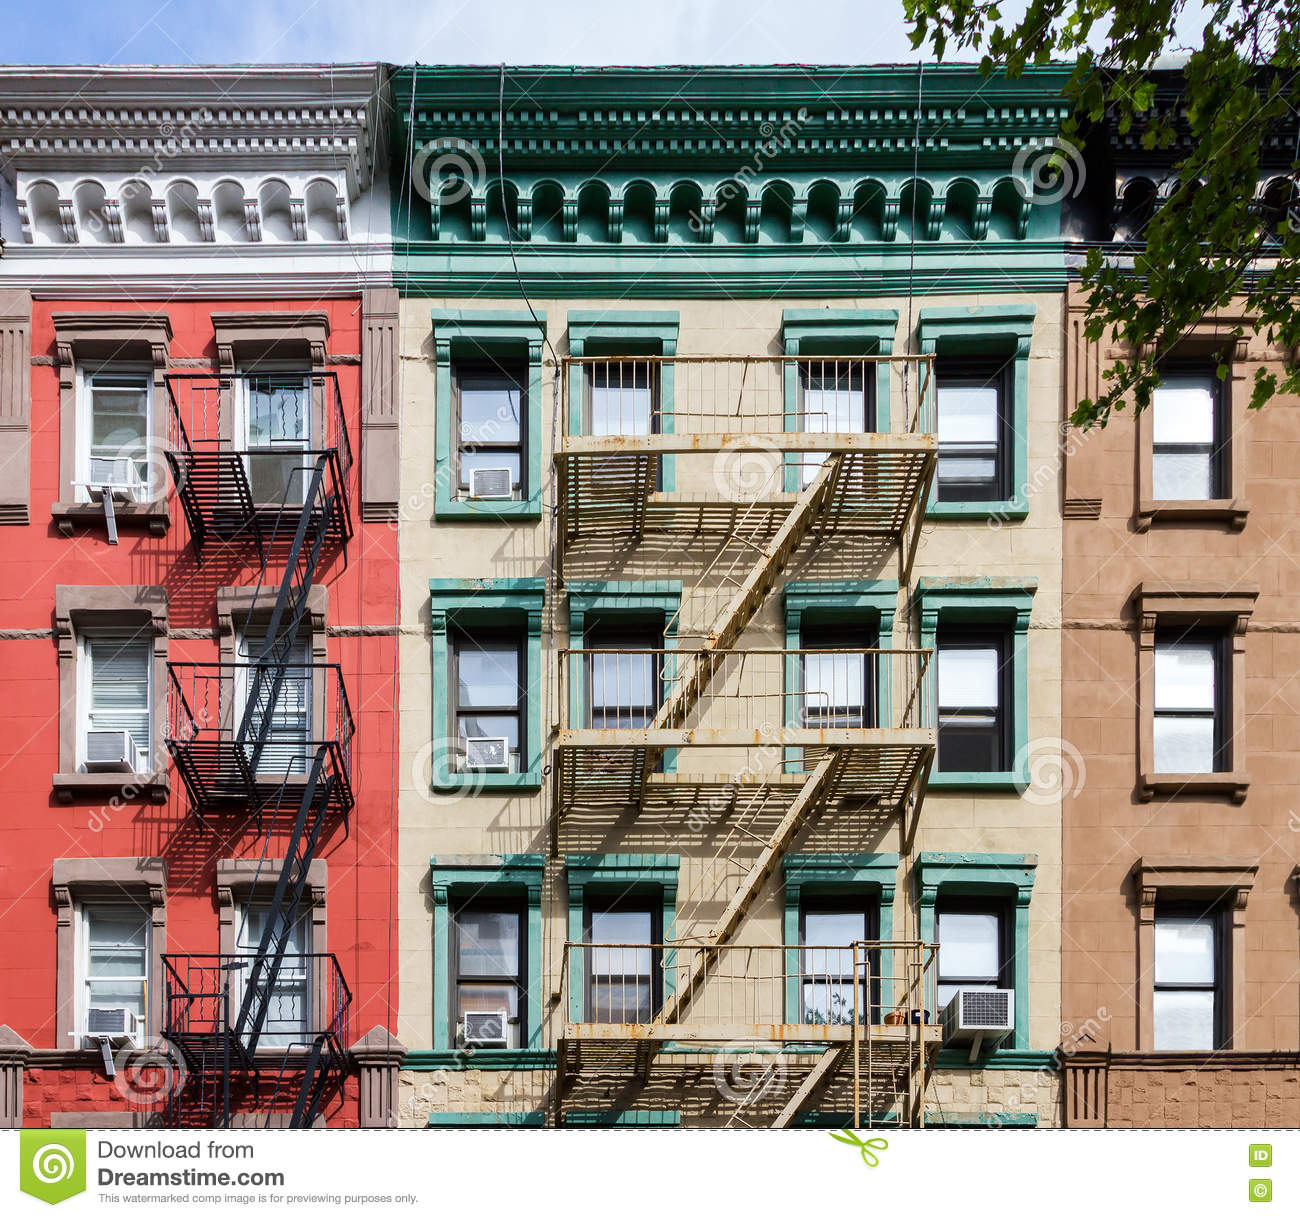 Tenement Style Apartments, New York City Royaltyfree. Electric Company Indianapolis. Orlando Personal Injury Attorney. Wedding Photography School Rise Cash Advance. Lifetime Free Credit Card Hunted By P C Cast. Cheap Auto Insurance Mi Shopify Drop Shipping. How Much Is Car Insurance For An 18 Year Old. Allianz Life Insurance Debt Forgiveness Rules. Emr Practice Management Software